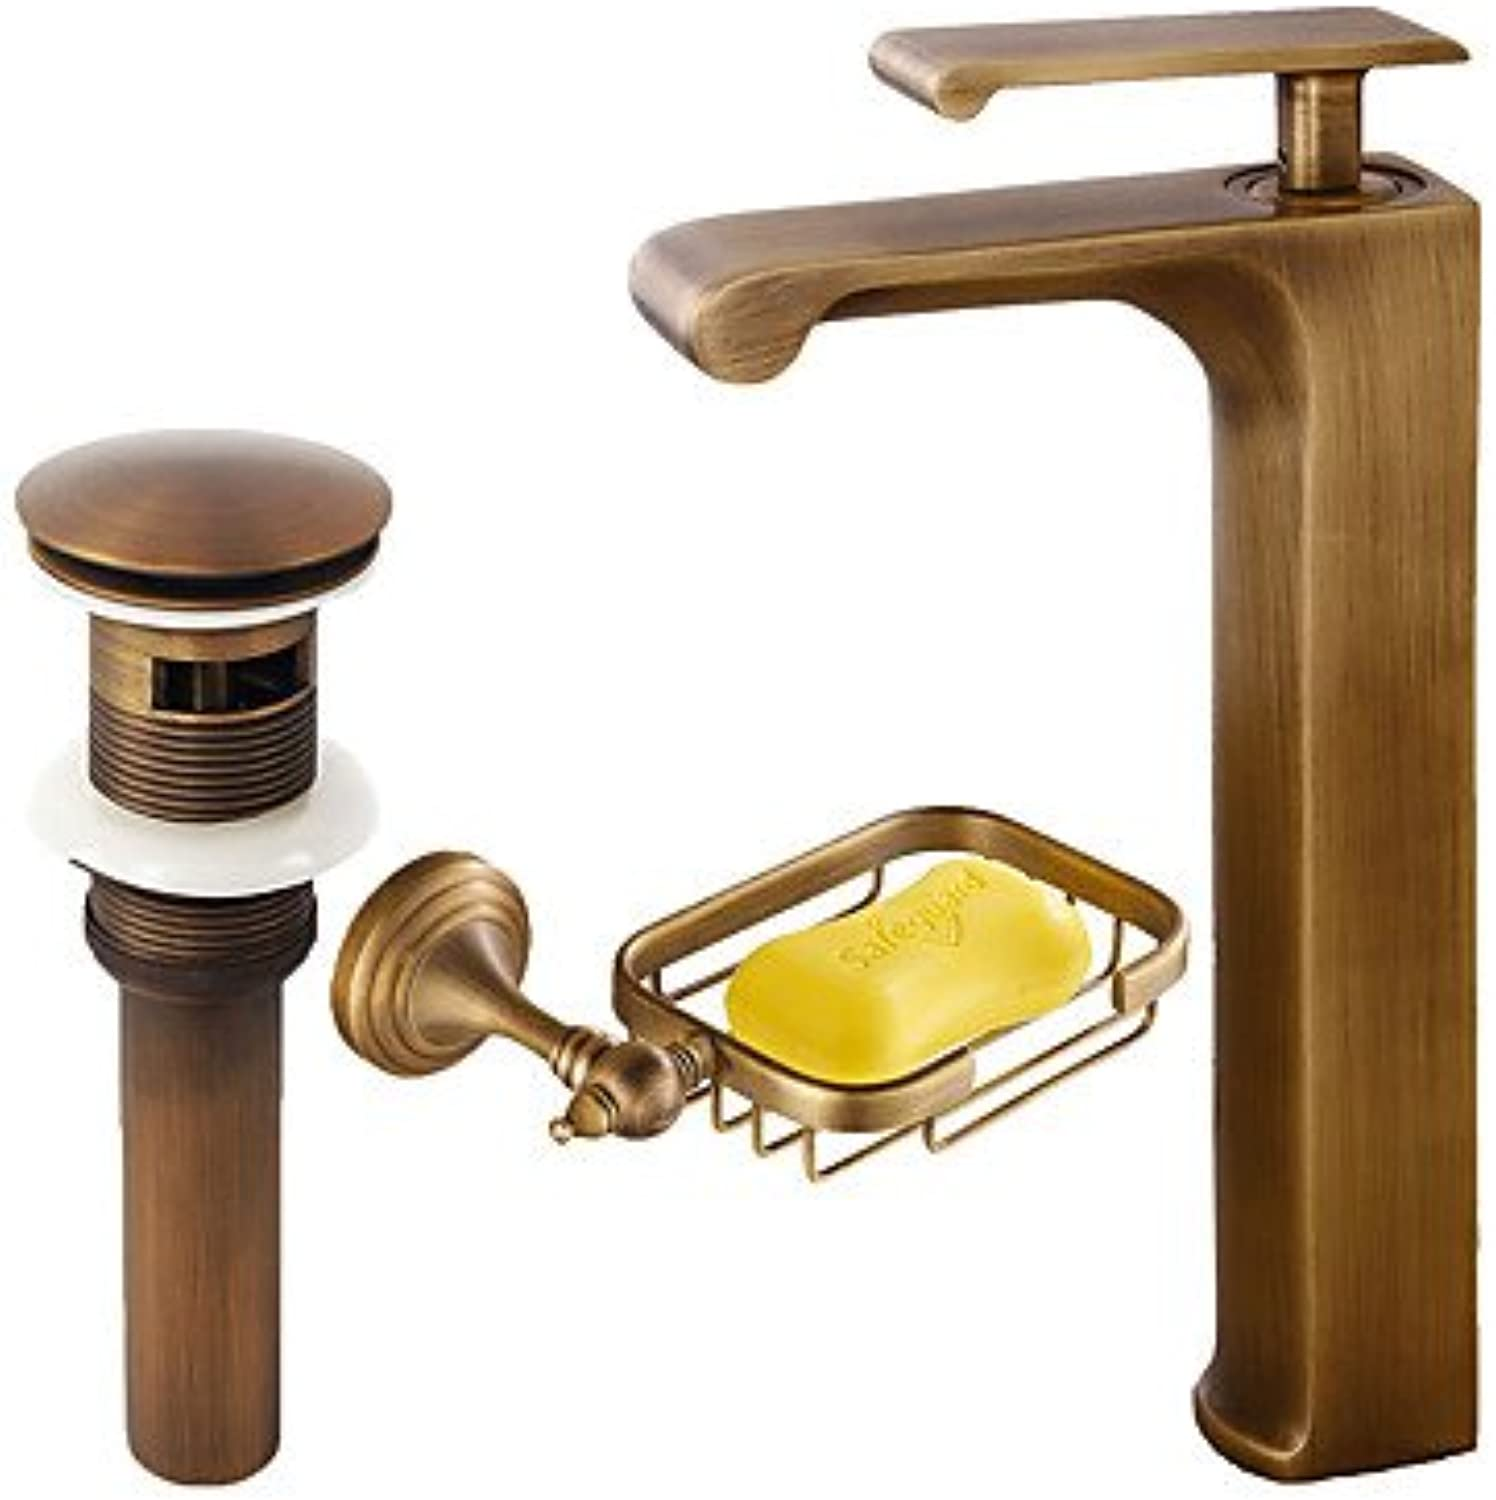 ZYT Centerset Waterfall Ceramic Valve Single Handle One Hole Antique Copper , Bathroom Sink Faucet